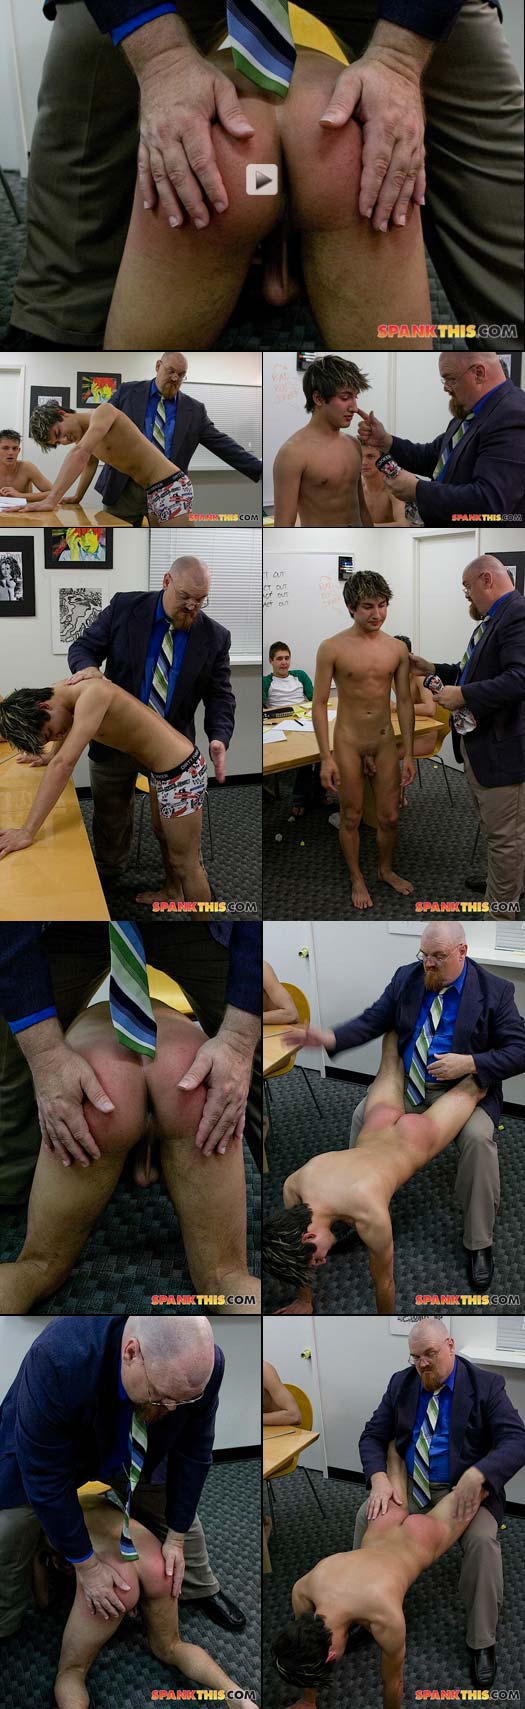 Daniel West stripped naked and visciousy spanked